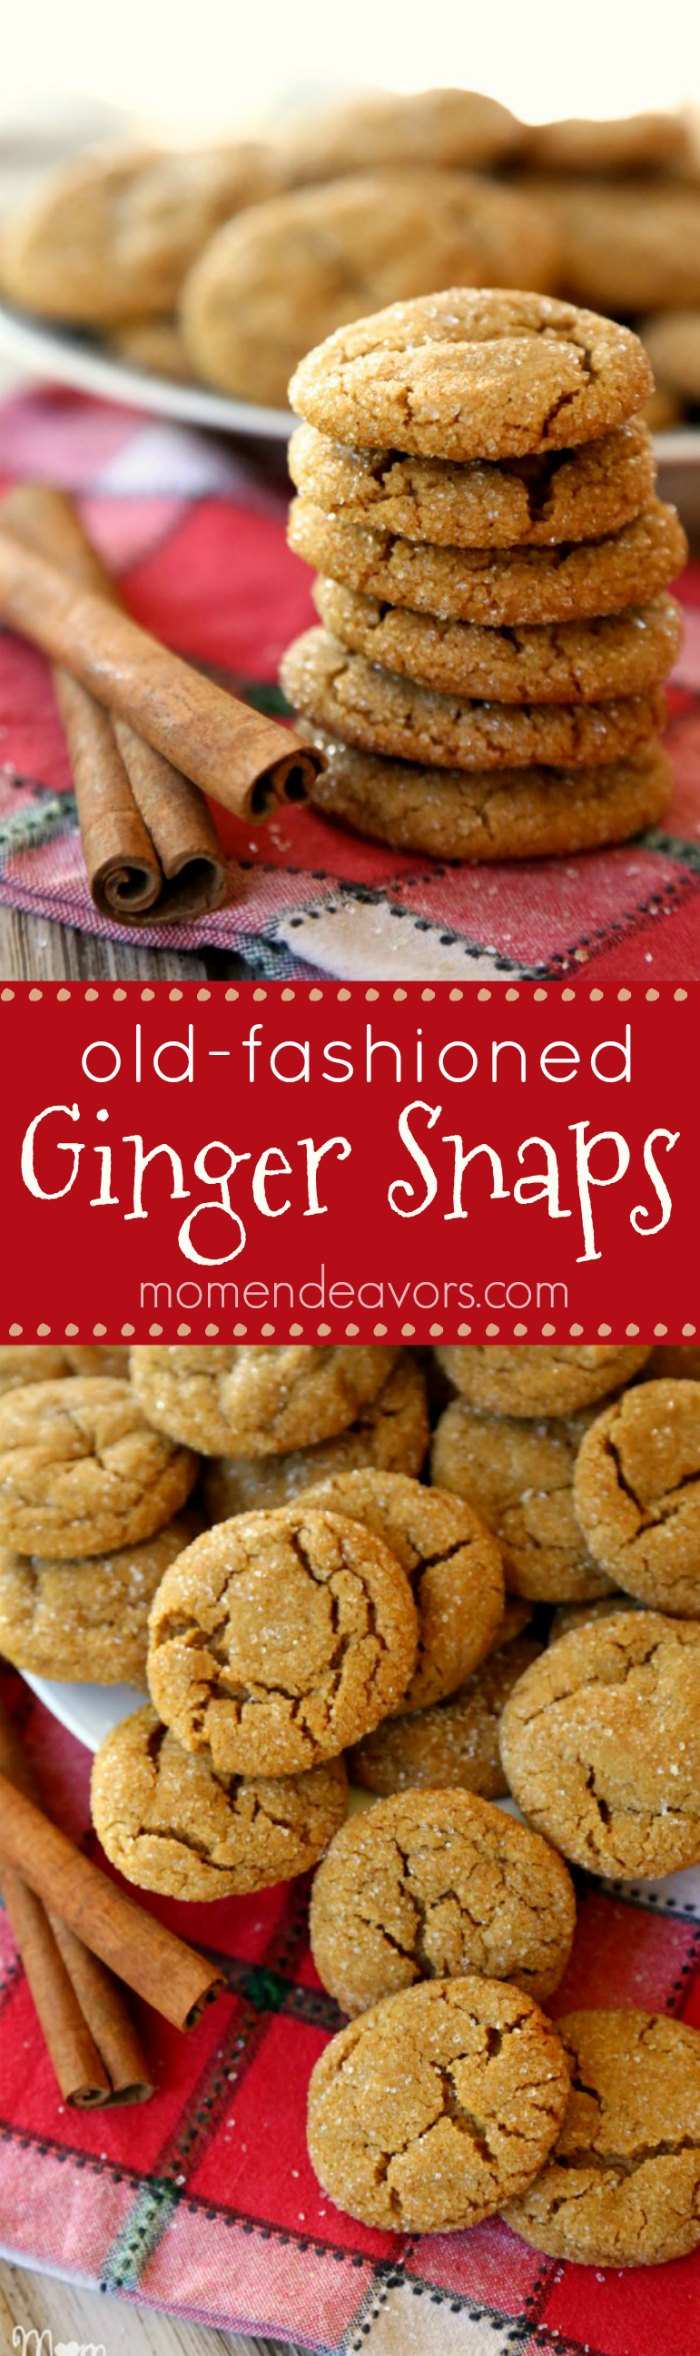 Old Fashioned Gluten Free Ginger Snap Cookies